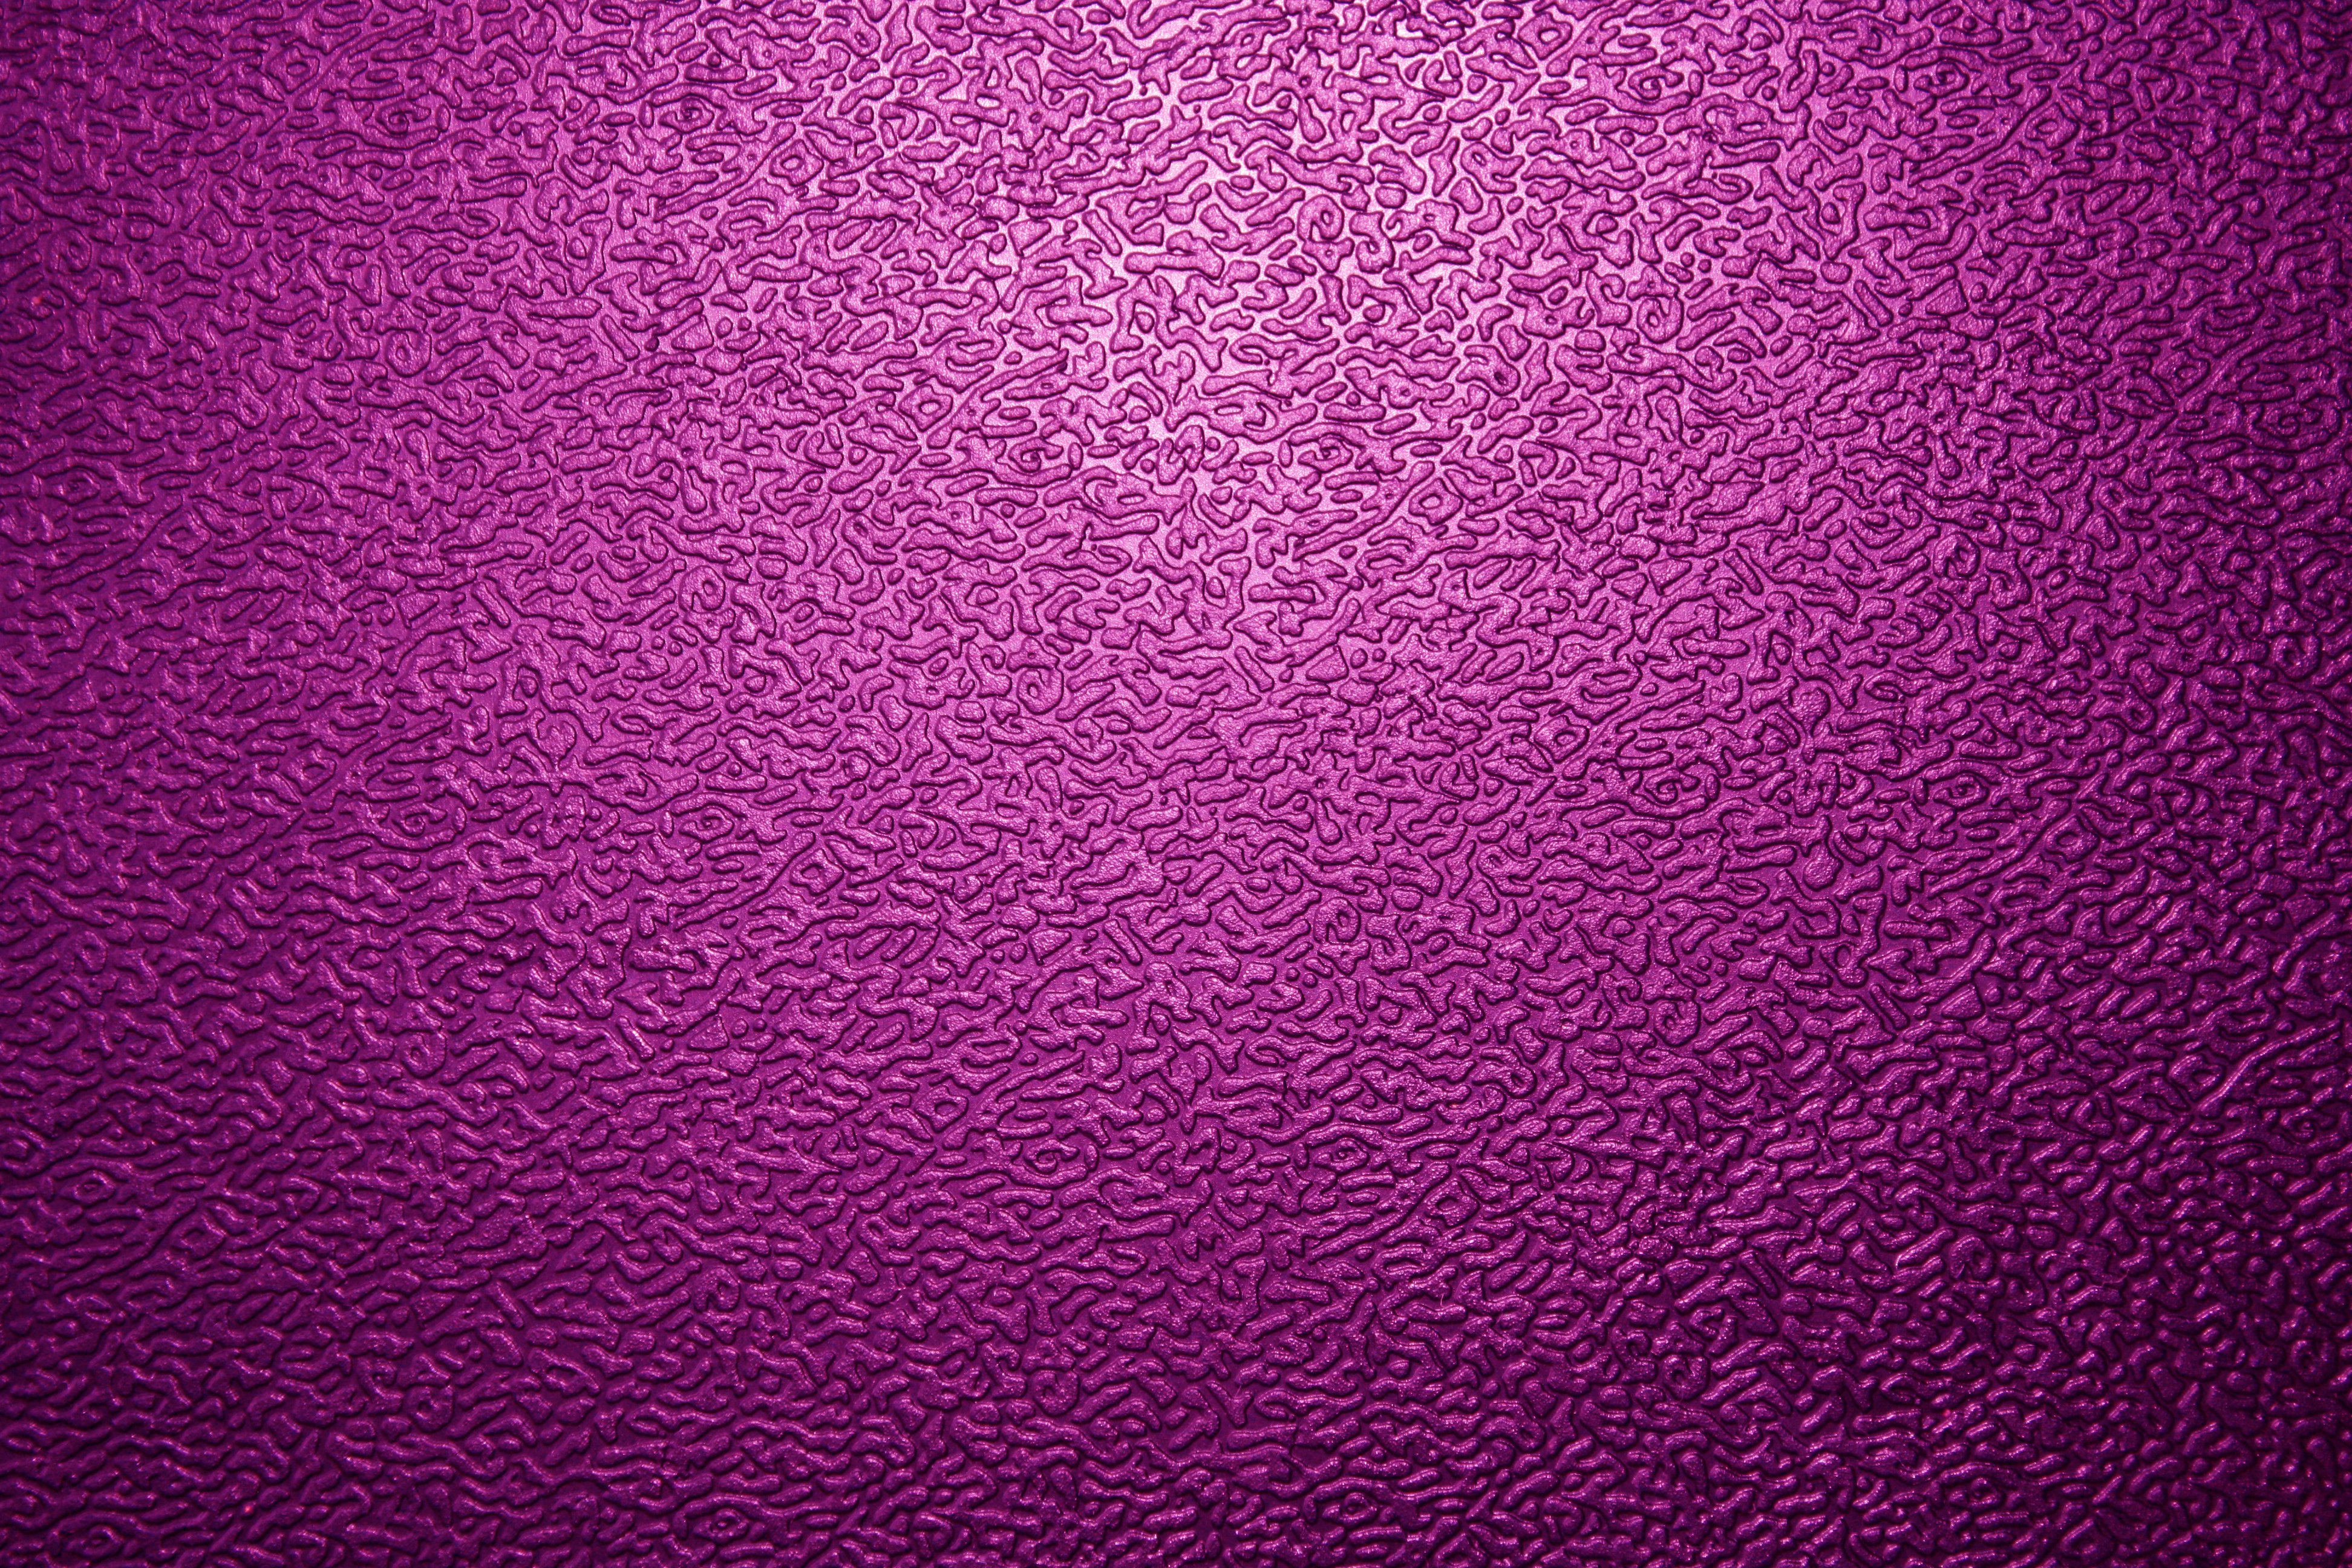 Pure Magenta Scale color theme by knoelreichert - Adobe Kuler